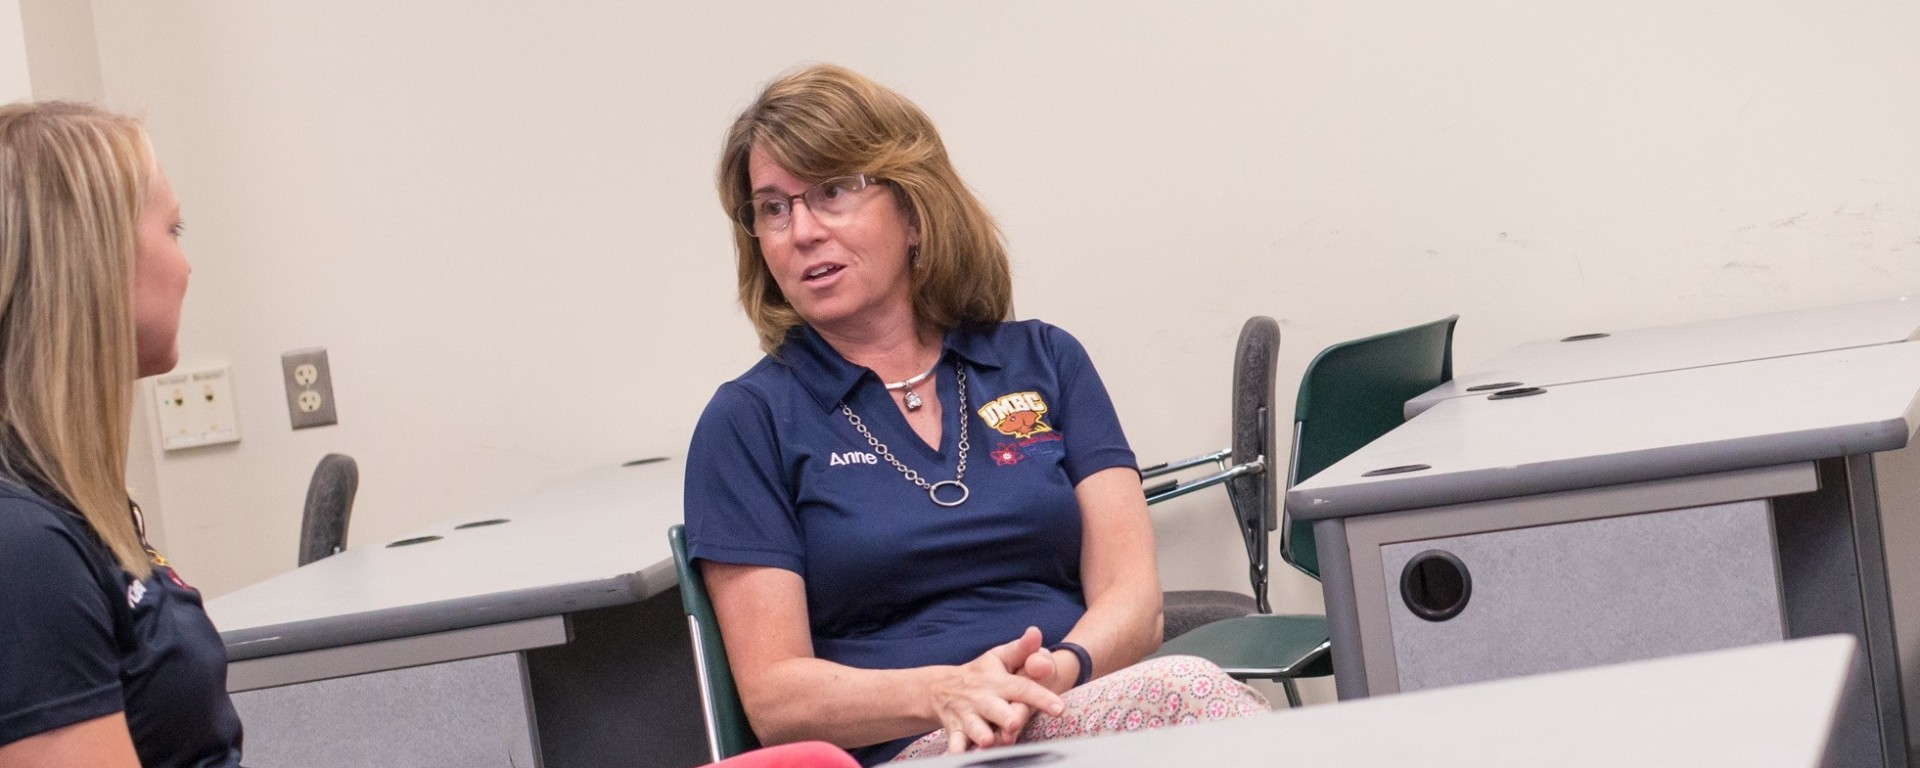 Anne Spence, Mechanical Engineering, Receives Engineering and Technology Education Advocacy Award